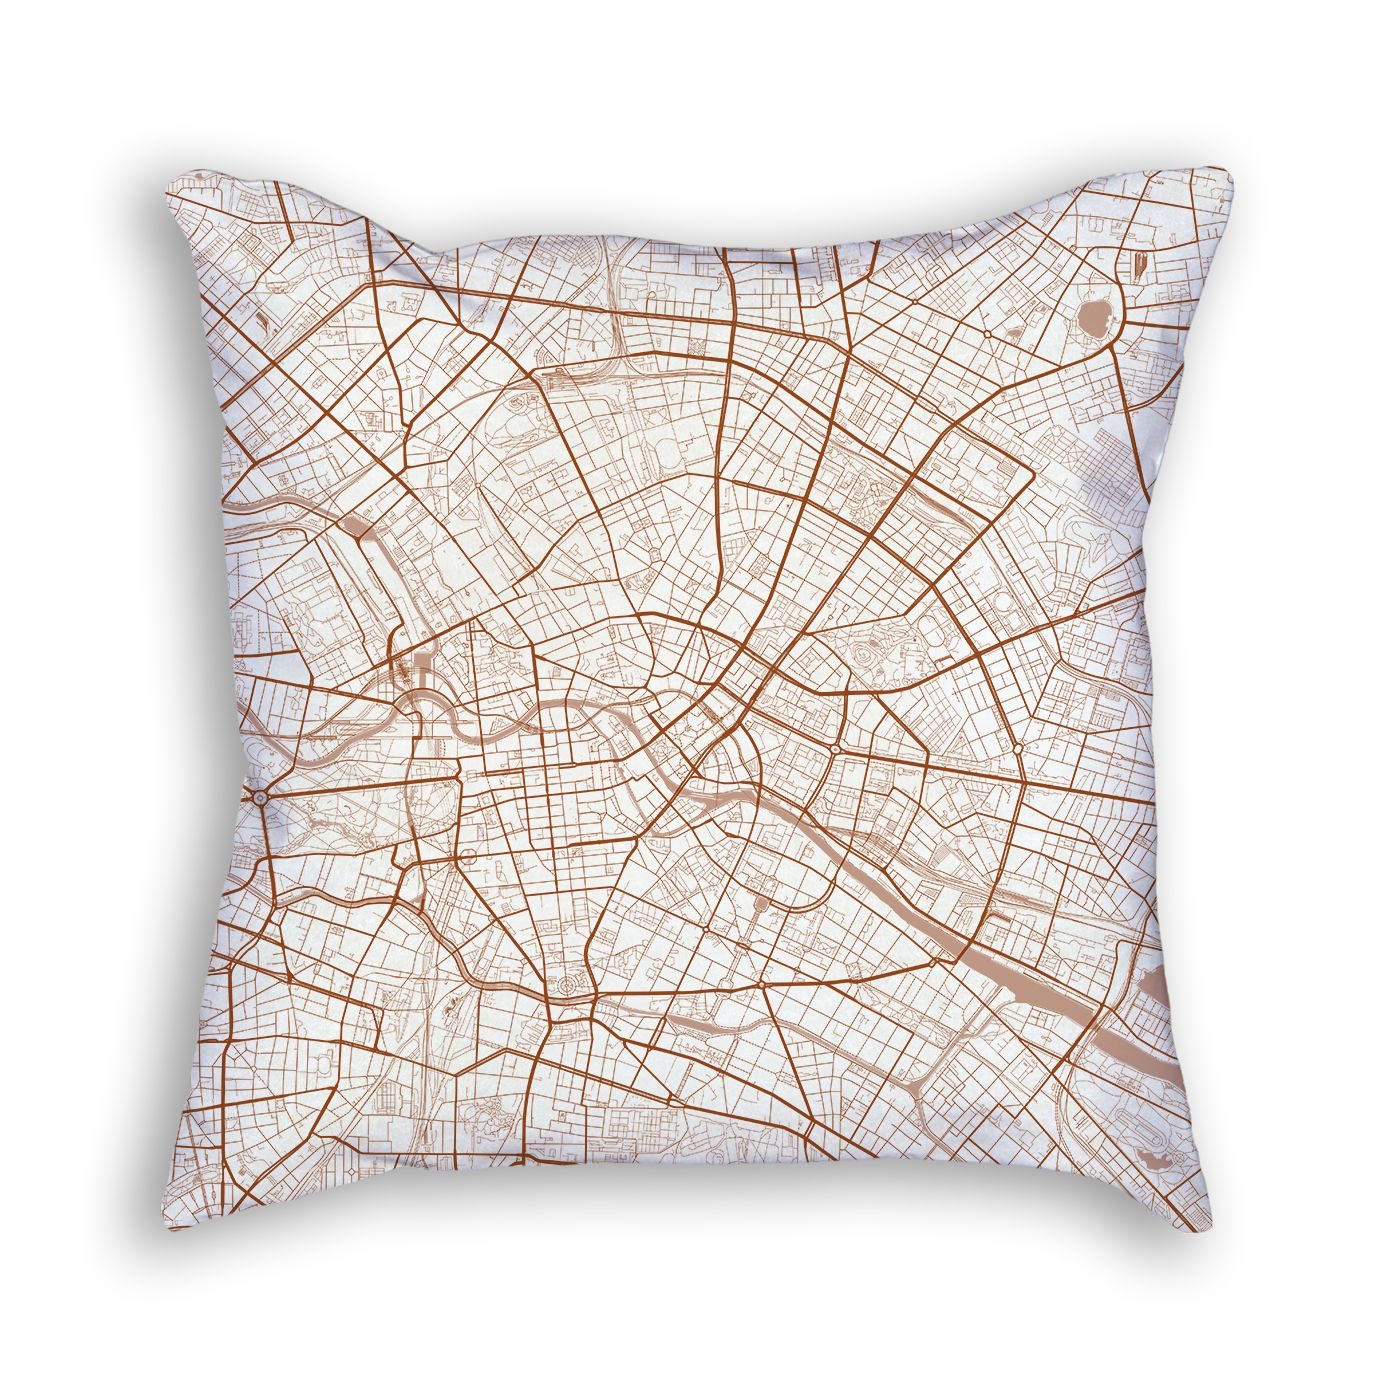 cushions art archives category pillow cus lumiere lifestyle by product lum cushion blush co pillows floor